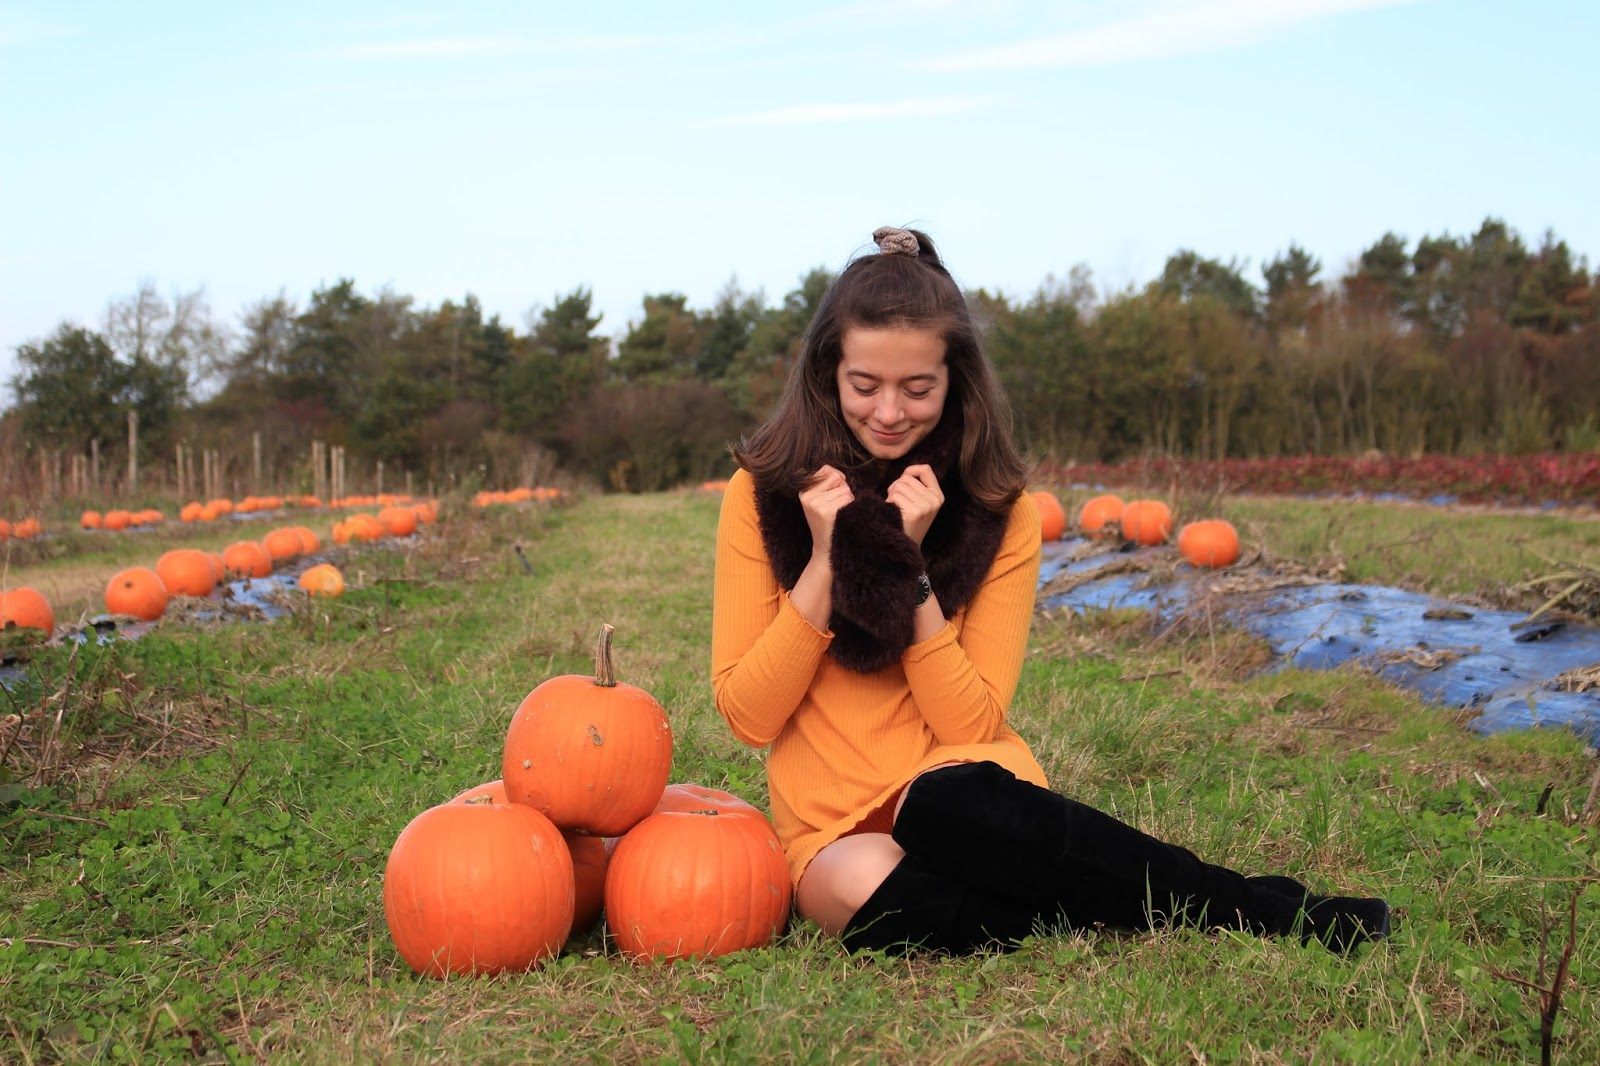 Blogger Abbey sits next to a stack of pumpkins, wearing an orange dress and faux fur scarf